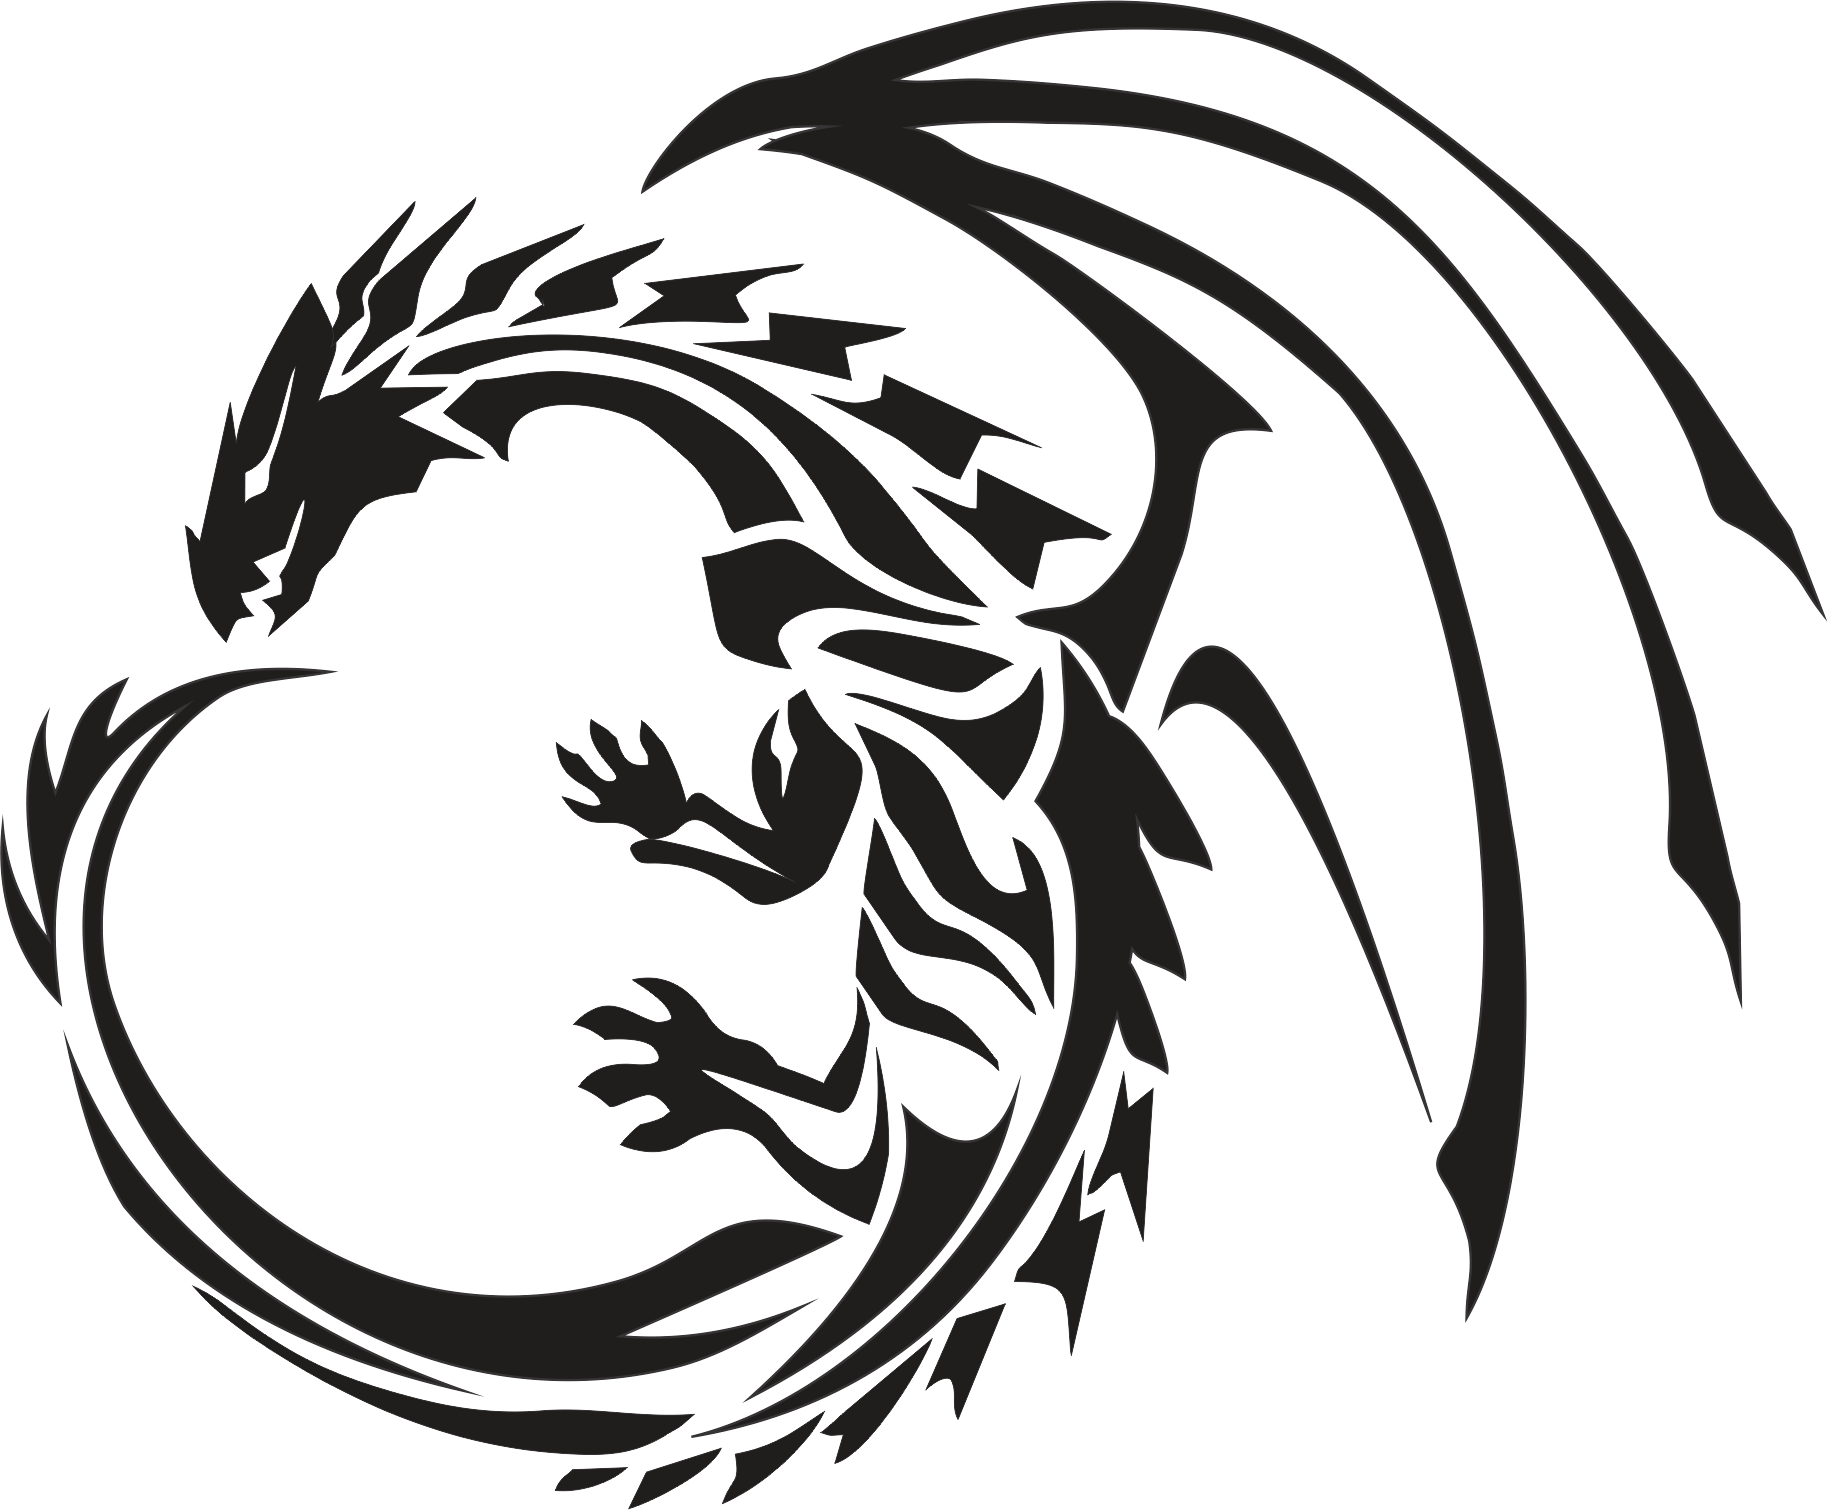 circle dragon tattoo transparent png stickpng. Black Bedroom Furniture Sets. Home Design Ideas